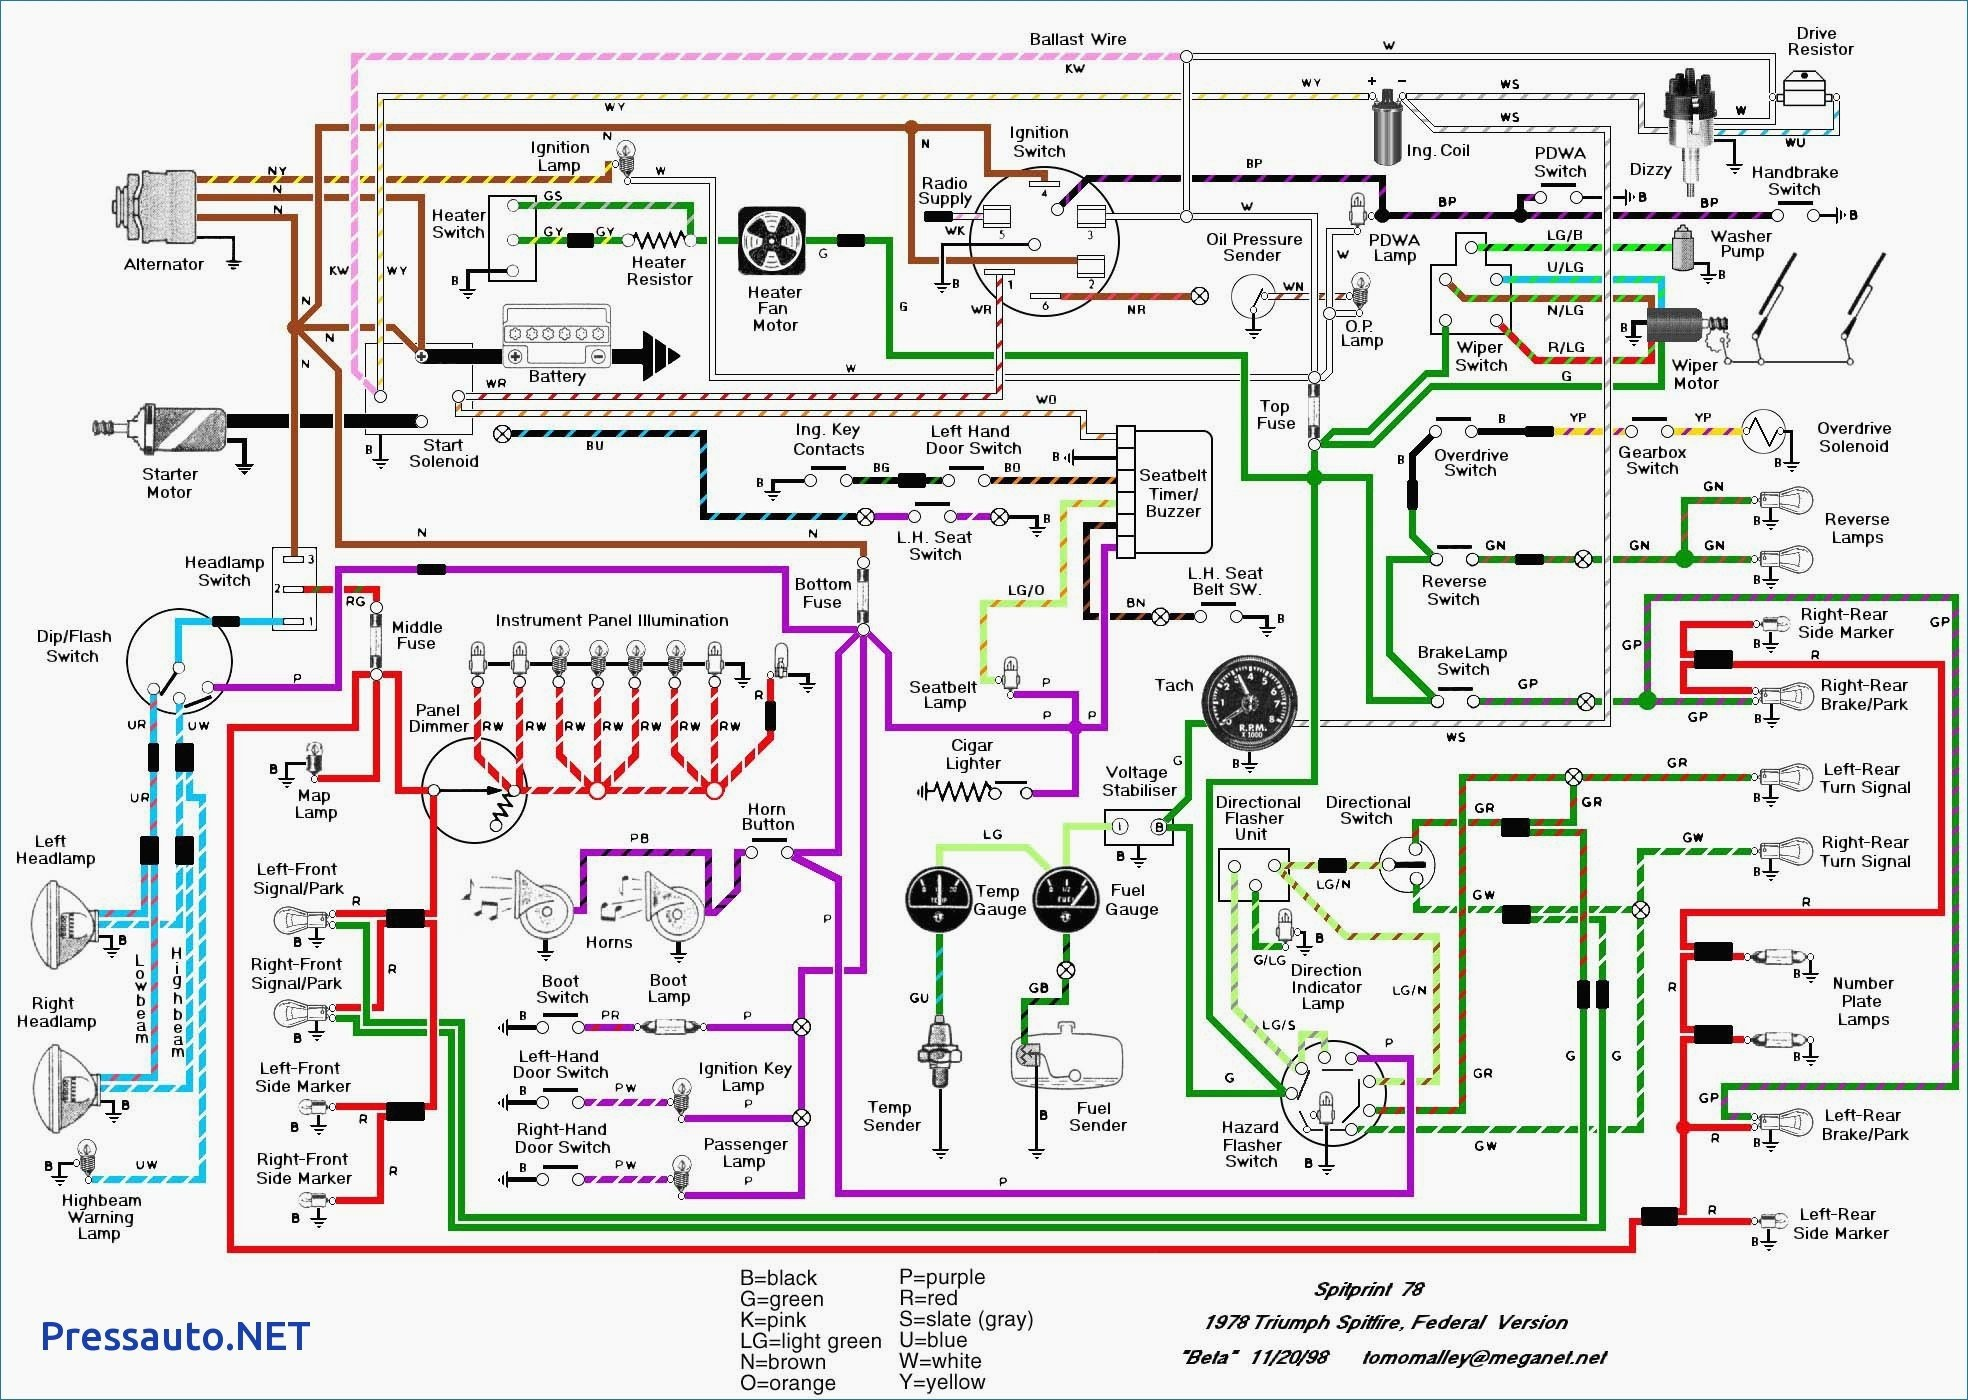 International 9200 Truck Wiring Diagrams Wiring Diagrams Element Element Miglioribanche It